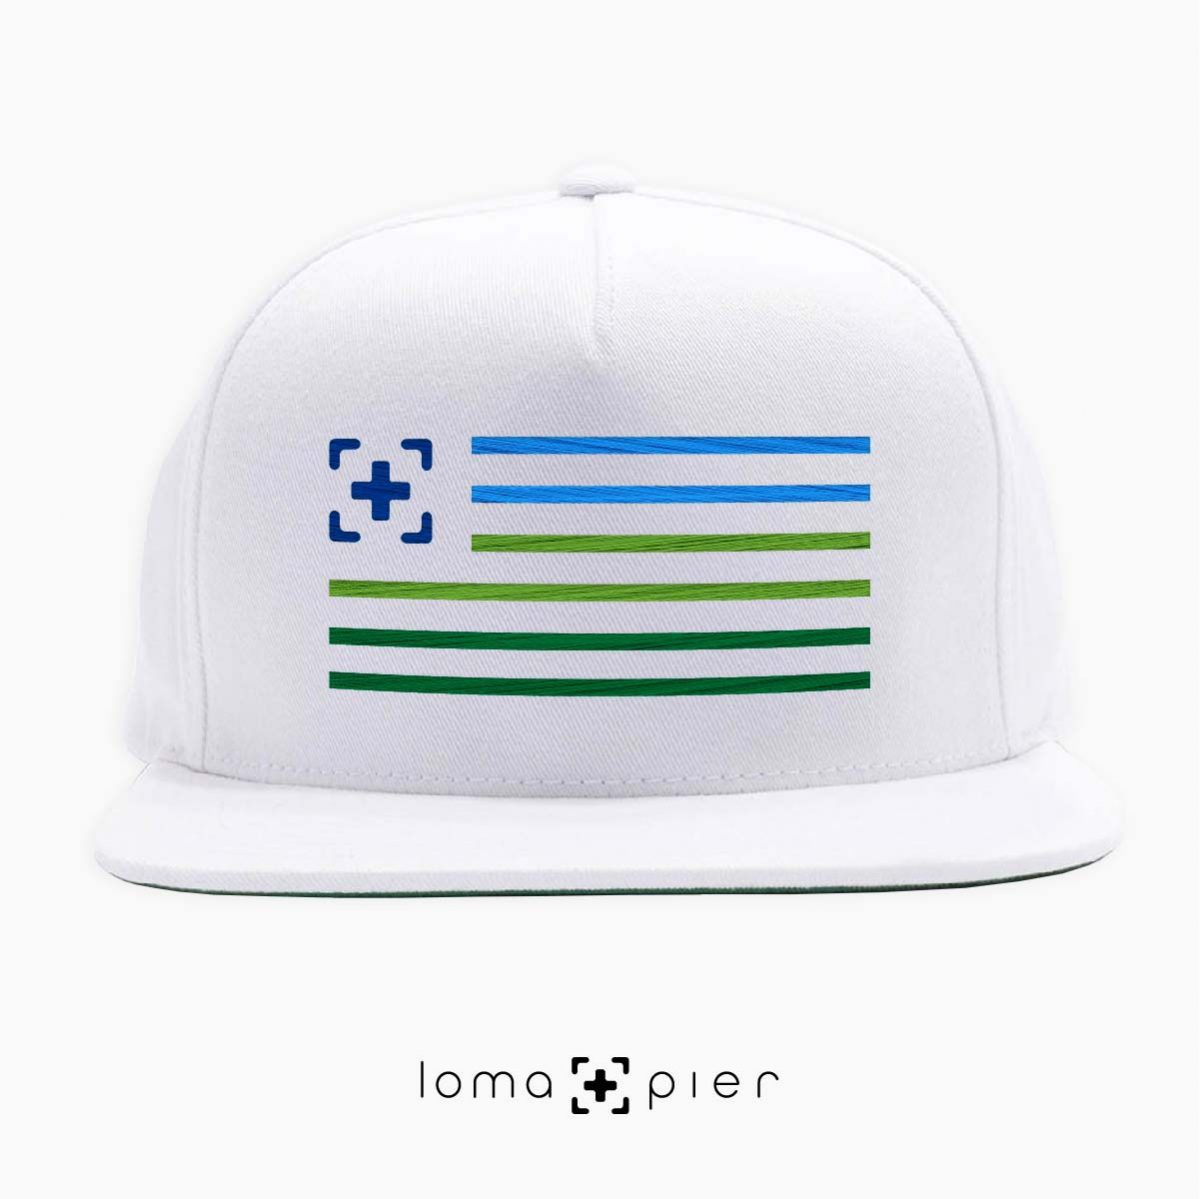 loma+stripes icon embroidered on a white classic snapback hat by loma+pier hat store